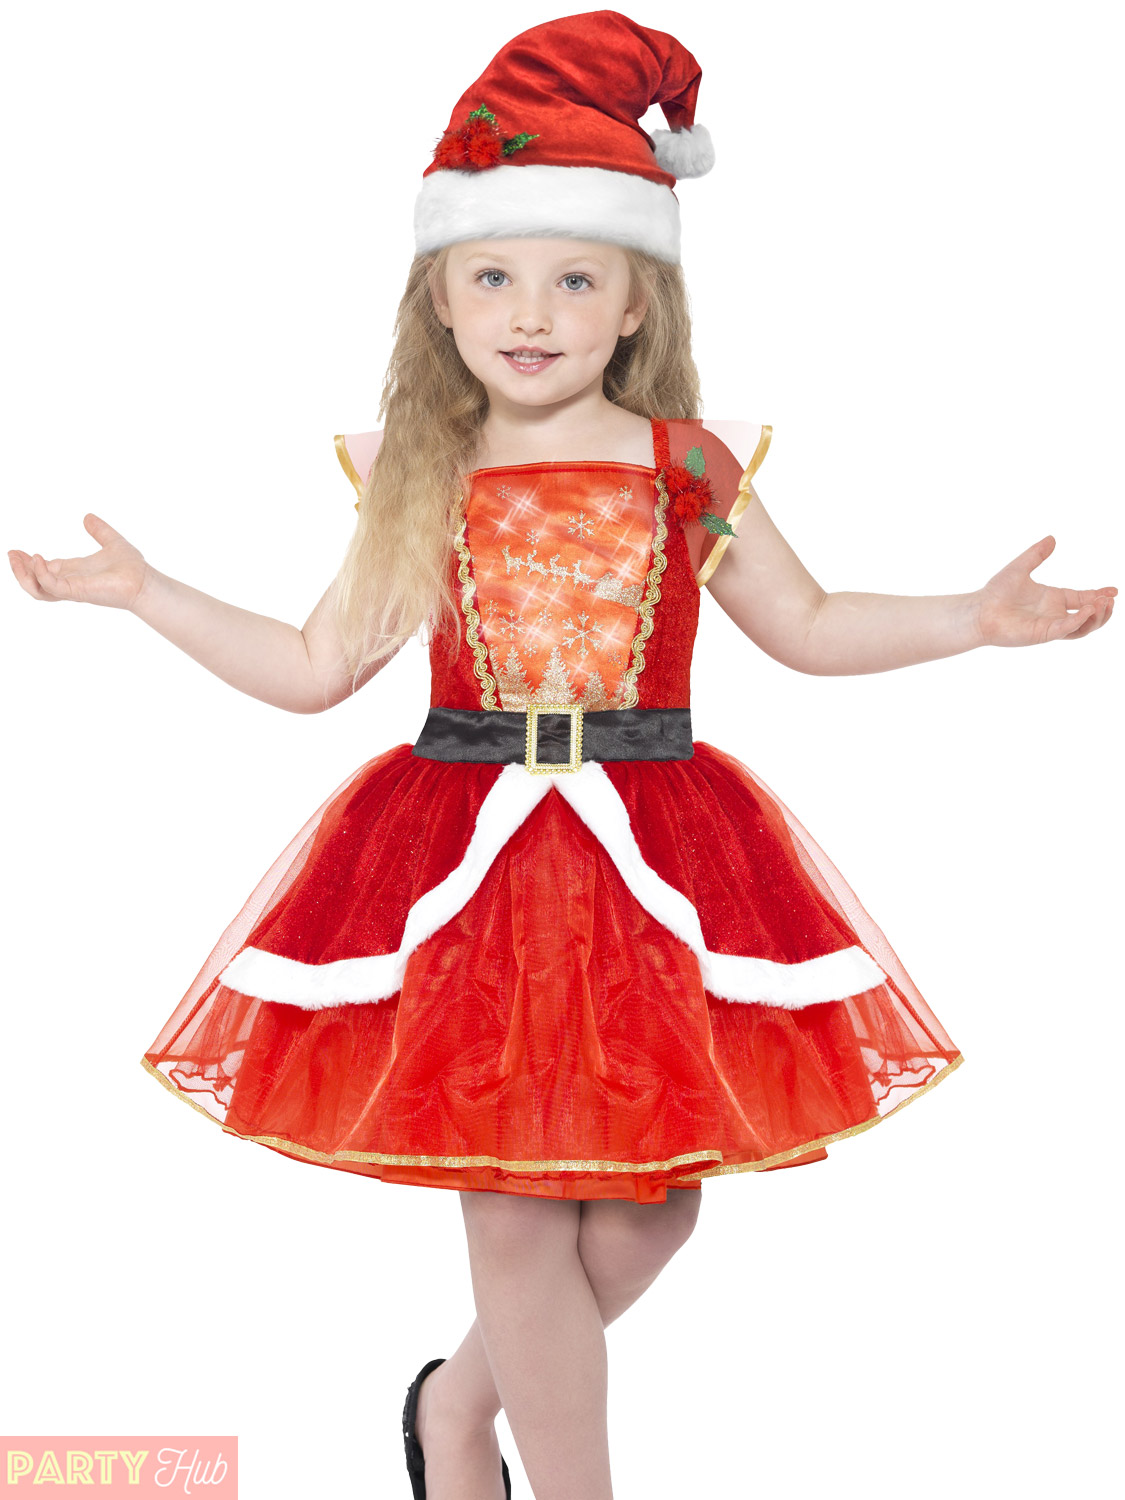 a3cbc368b93 Details about Girls Light Up Miss Santa Costume Childs Christmas Fancy  Dress Kids Xmas Outfit